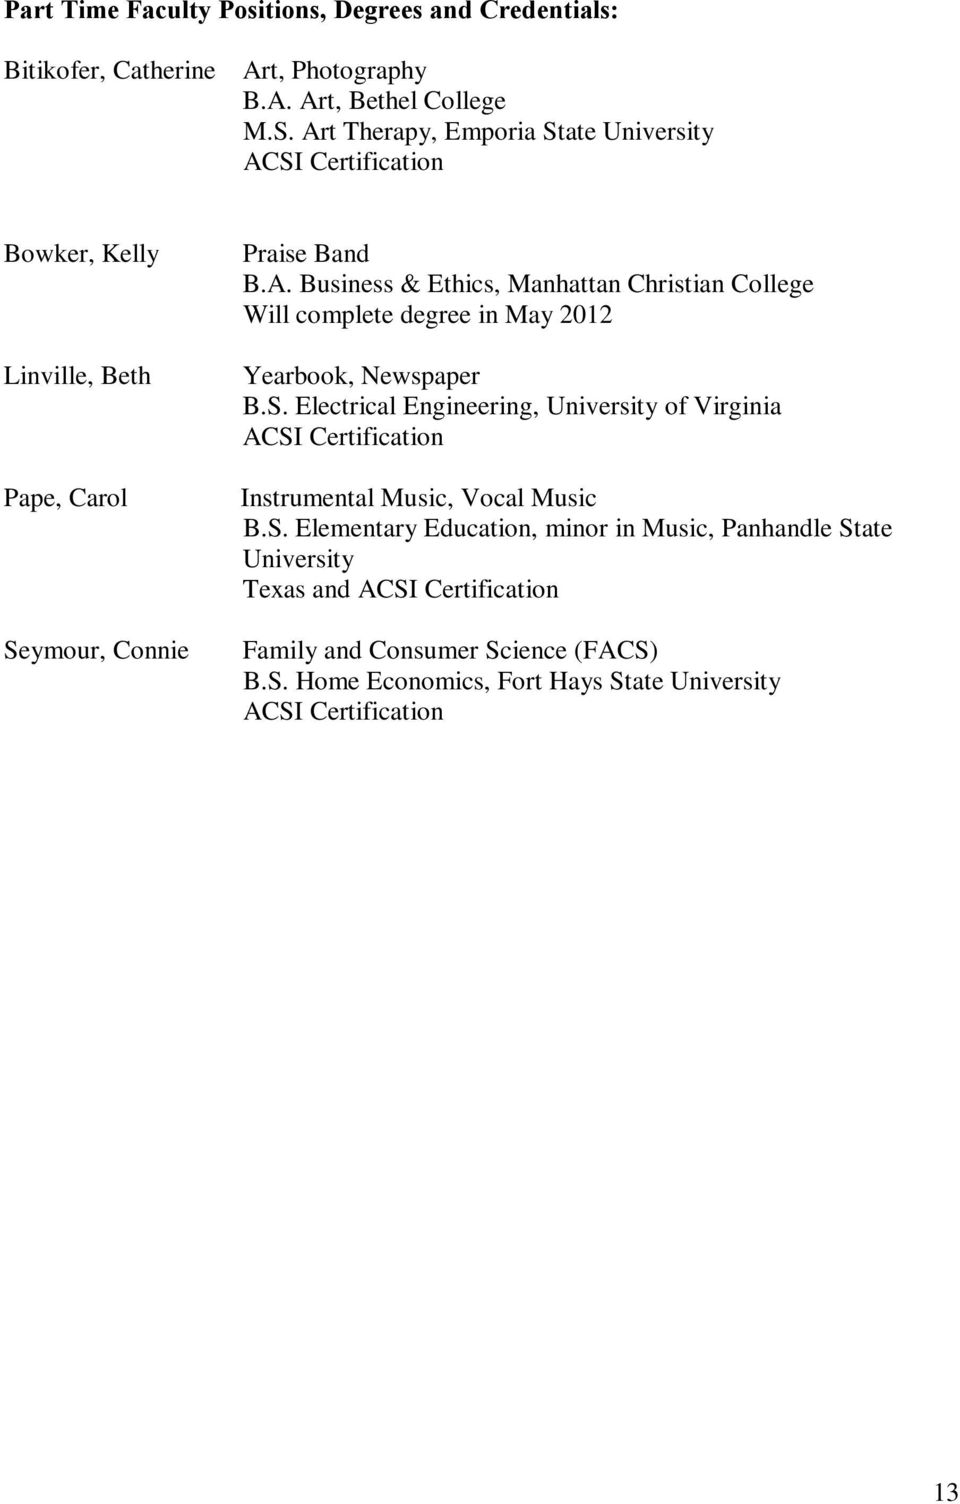 Acsi Accreditation Self Study Report Pdf